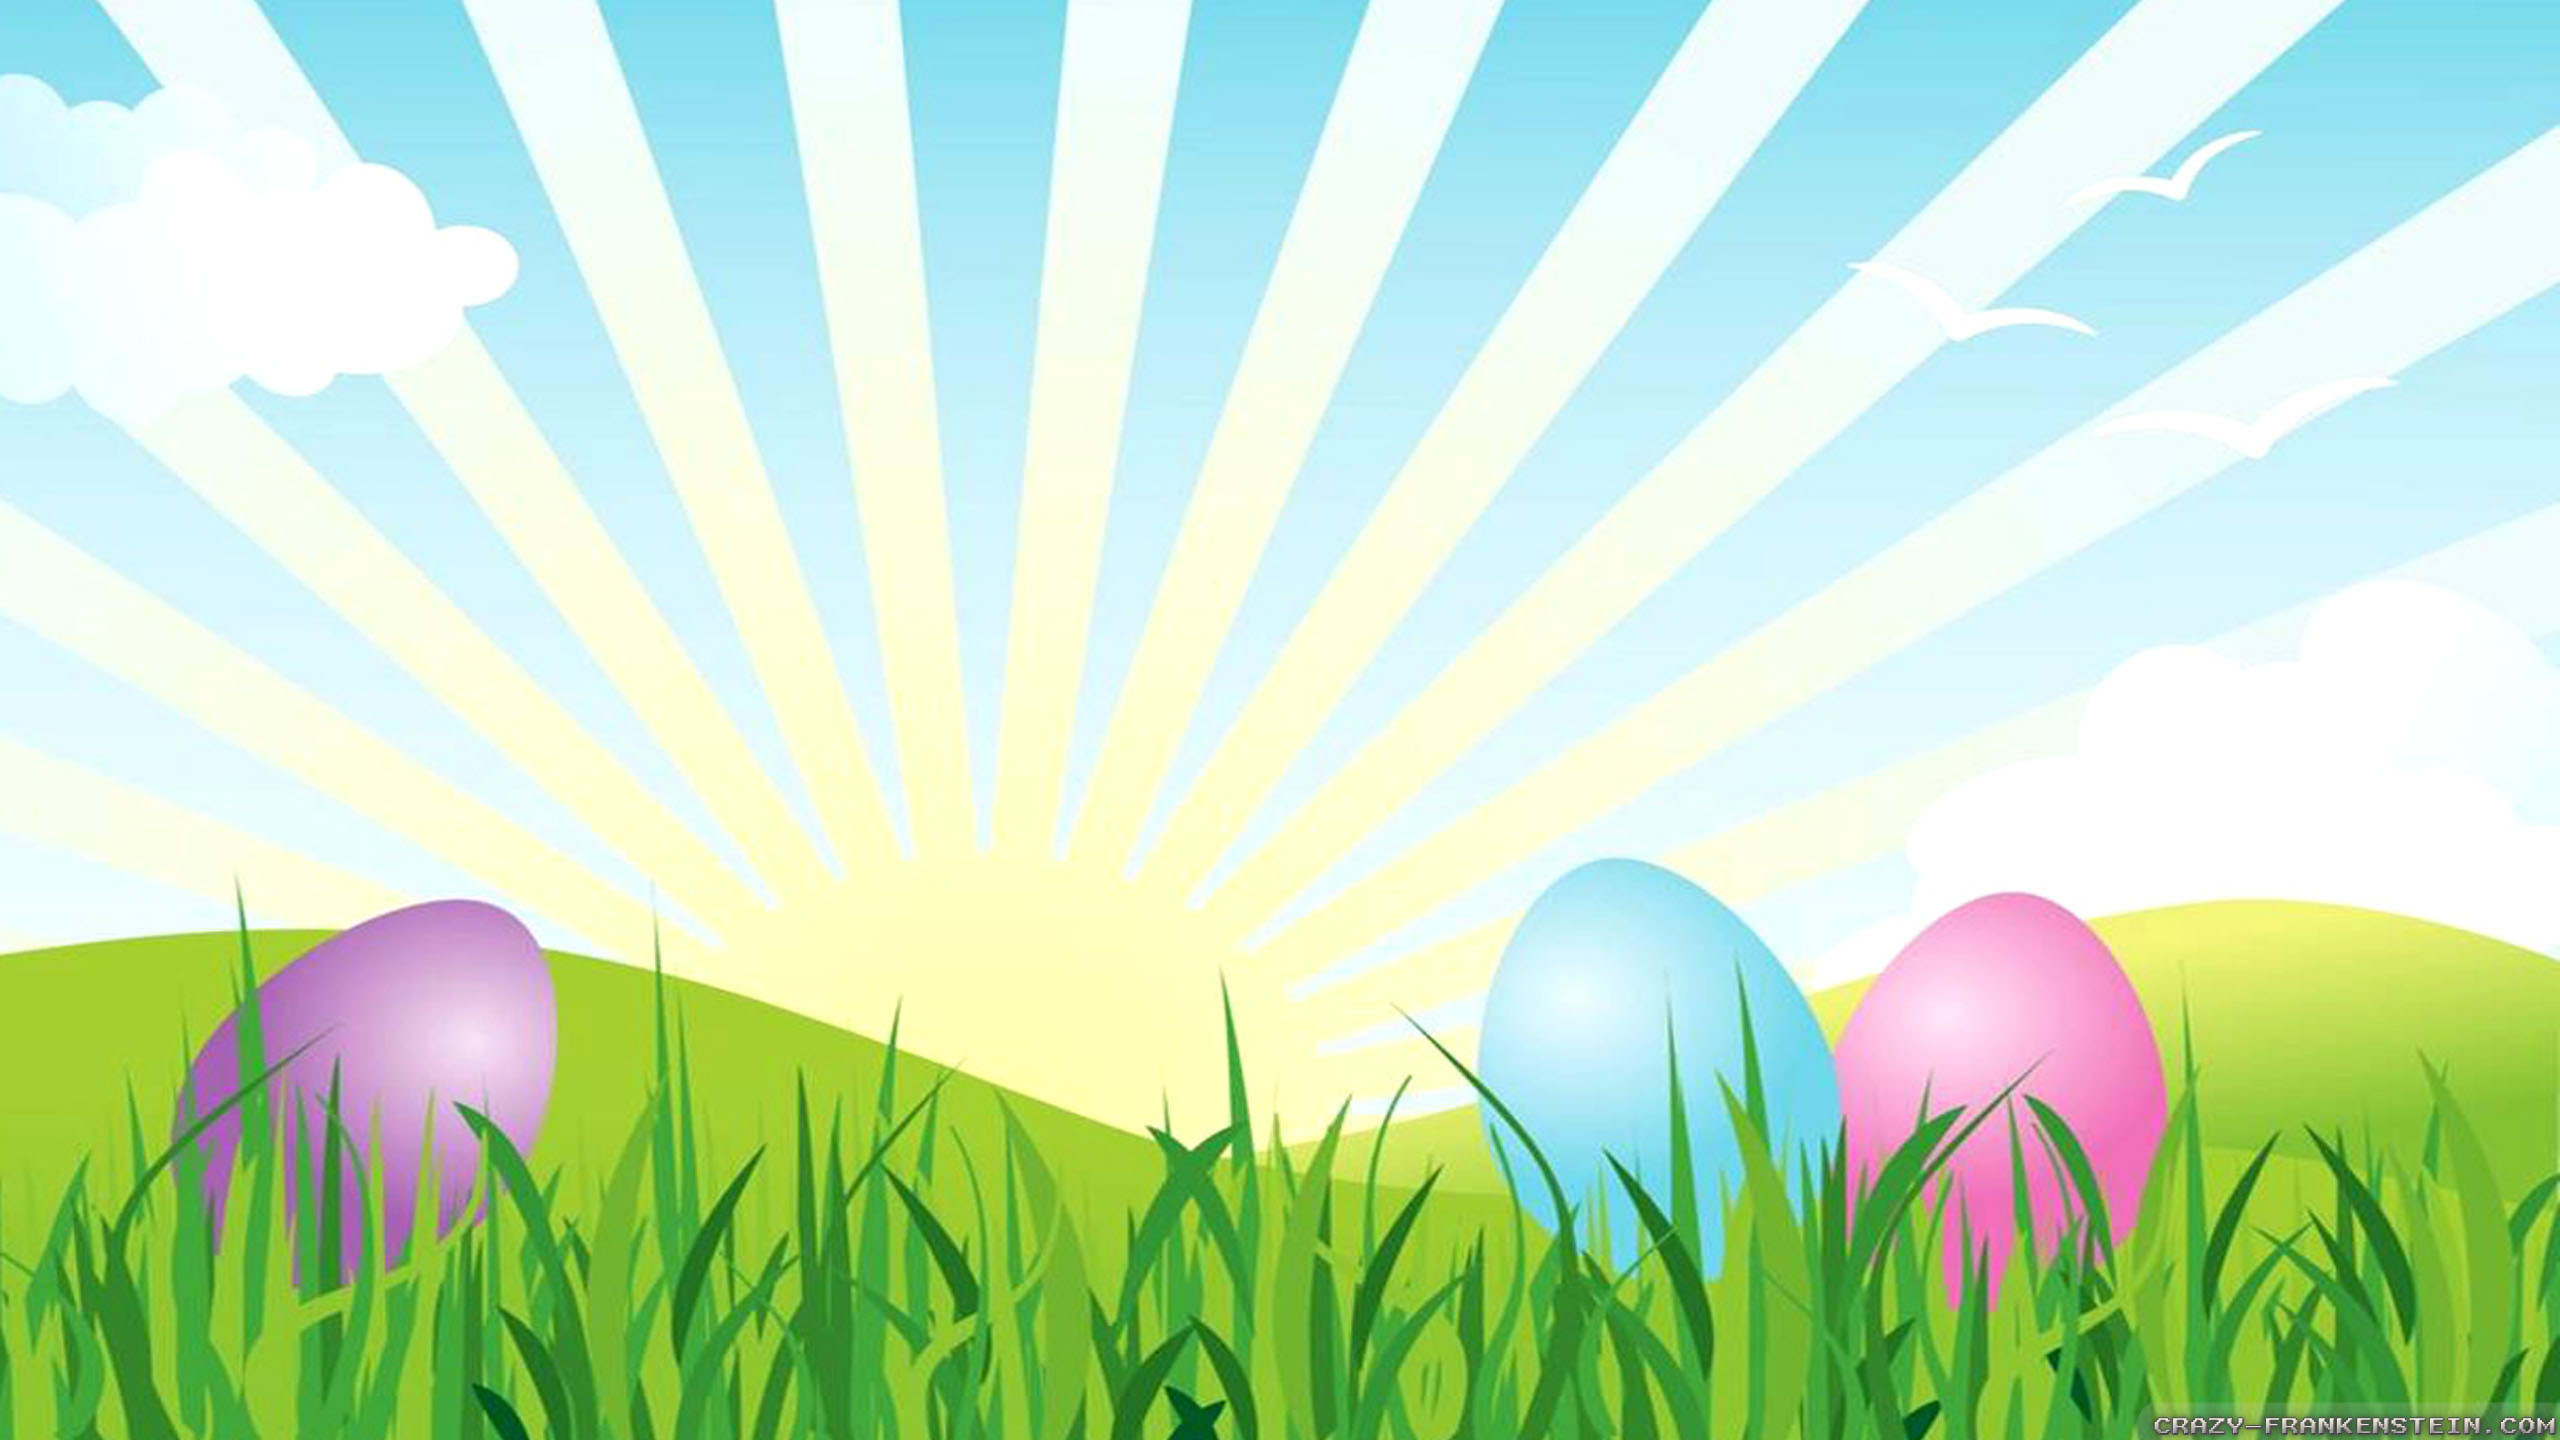 2560x1440 Videos · Home > Wallpapers > Easter wallpapers